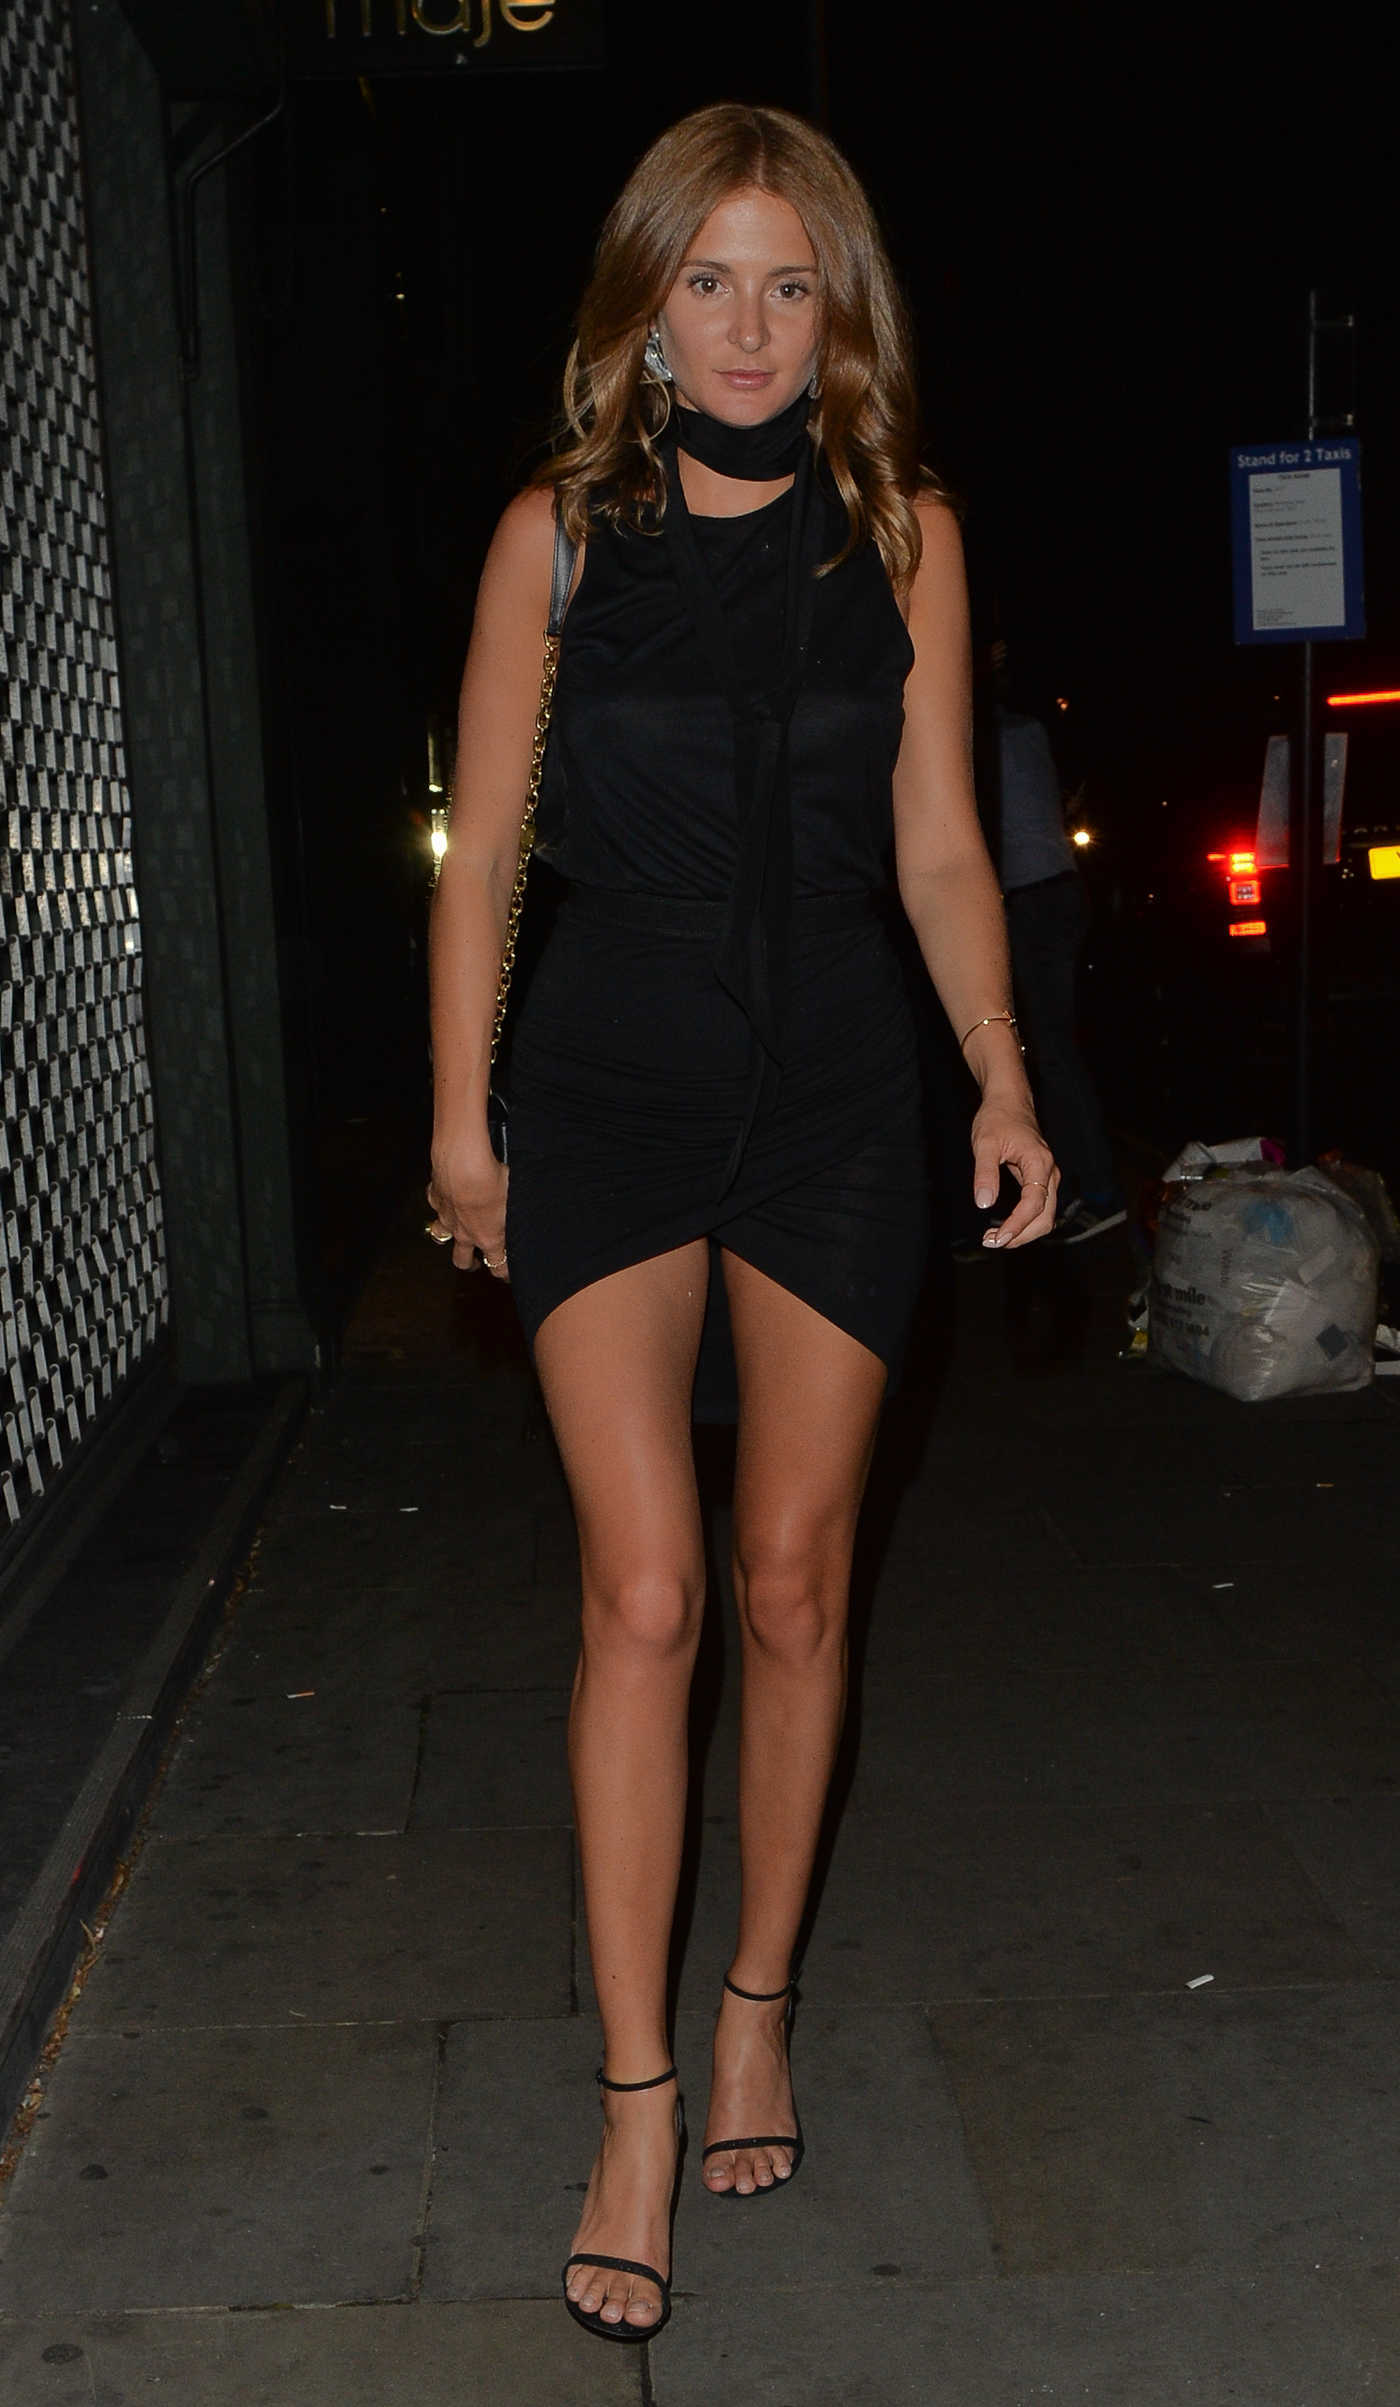 Millie Mackintosh Was Seen at a Restaurant Ours in London 07/22/2016